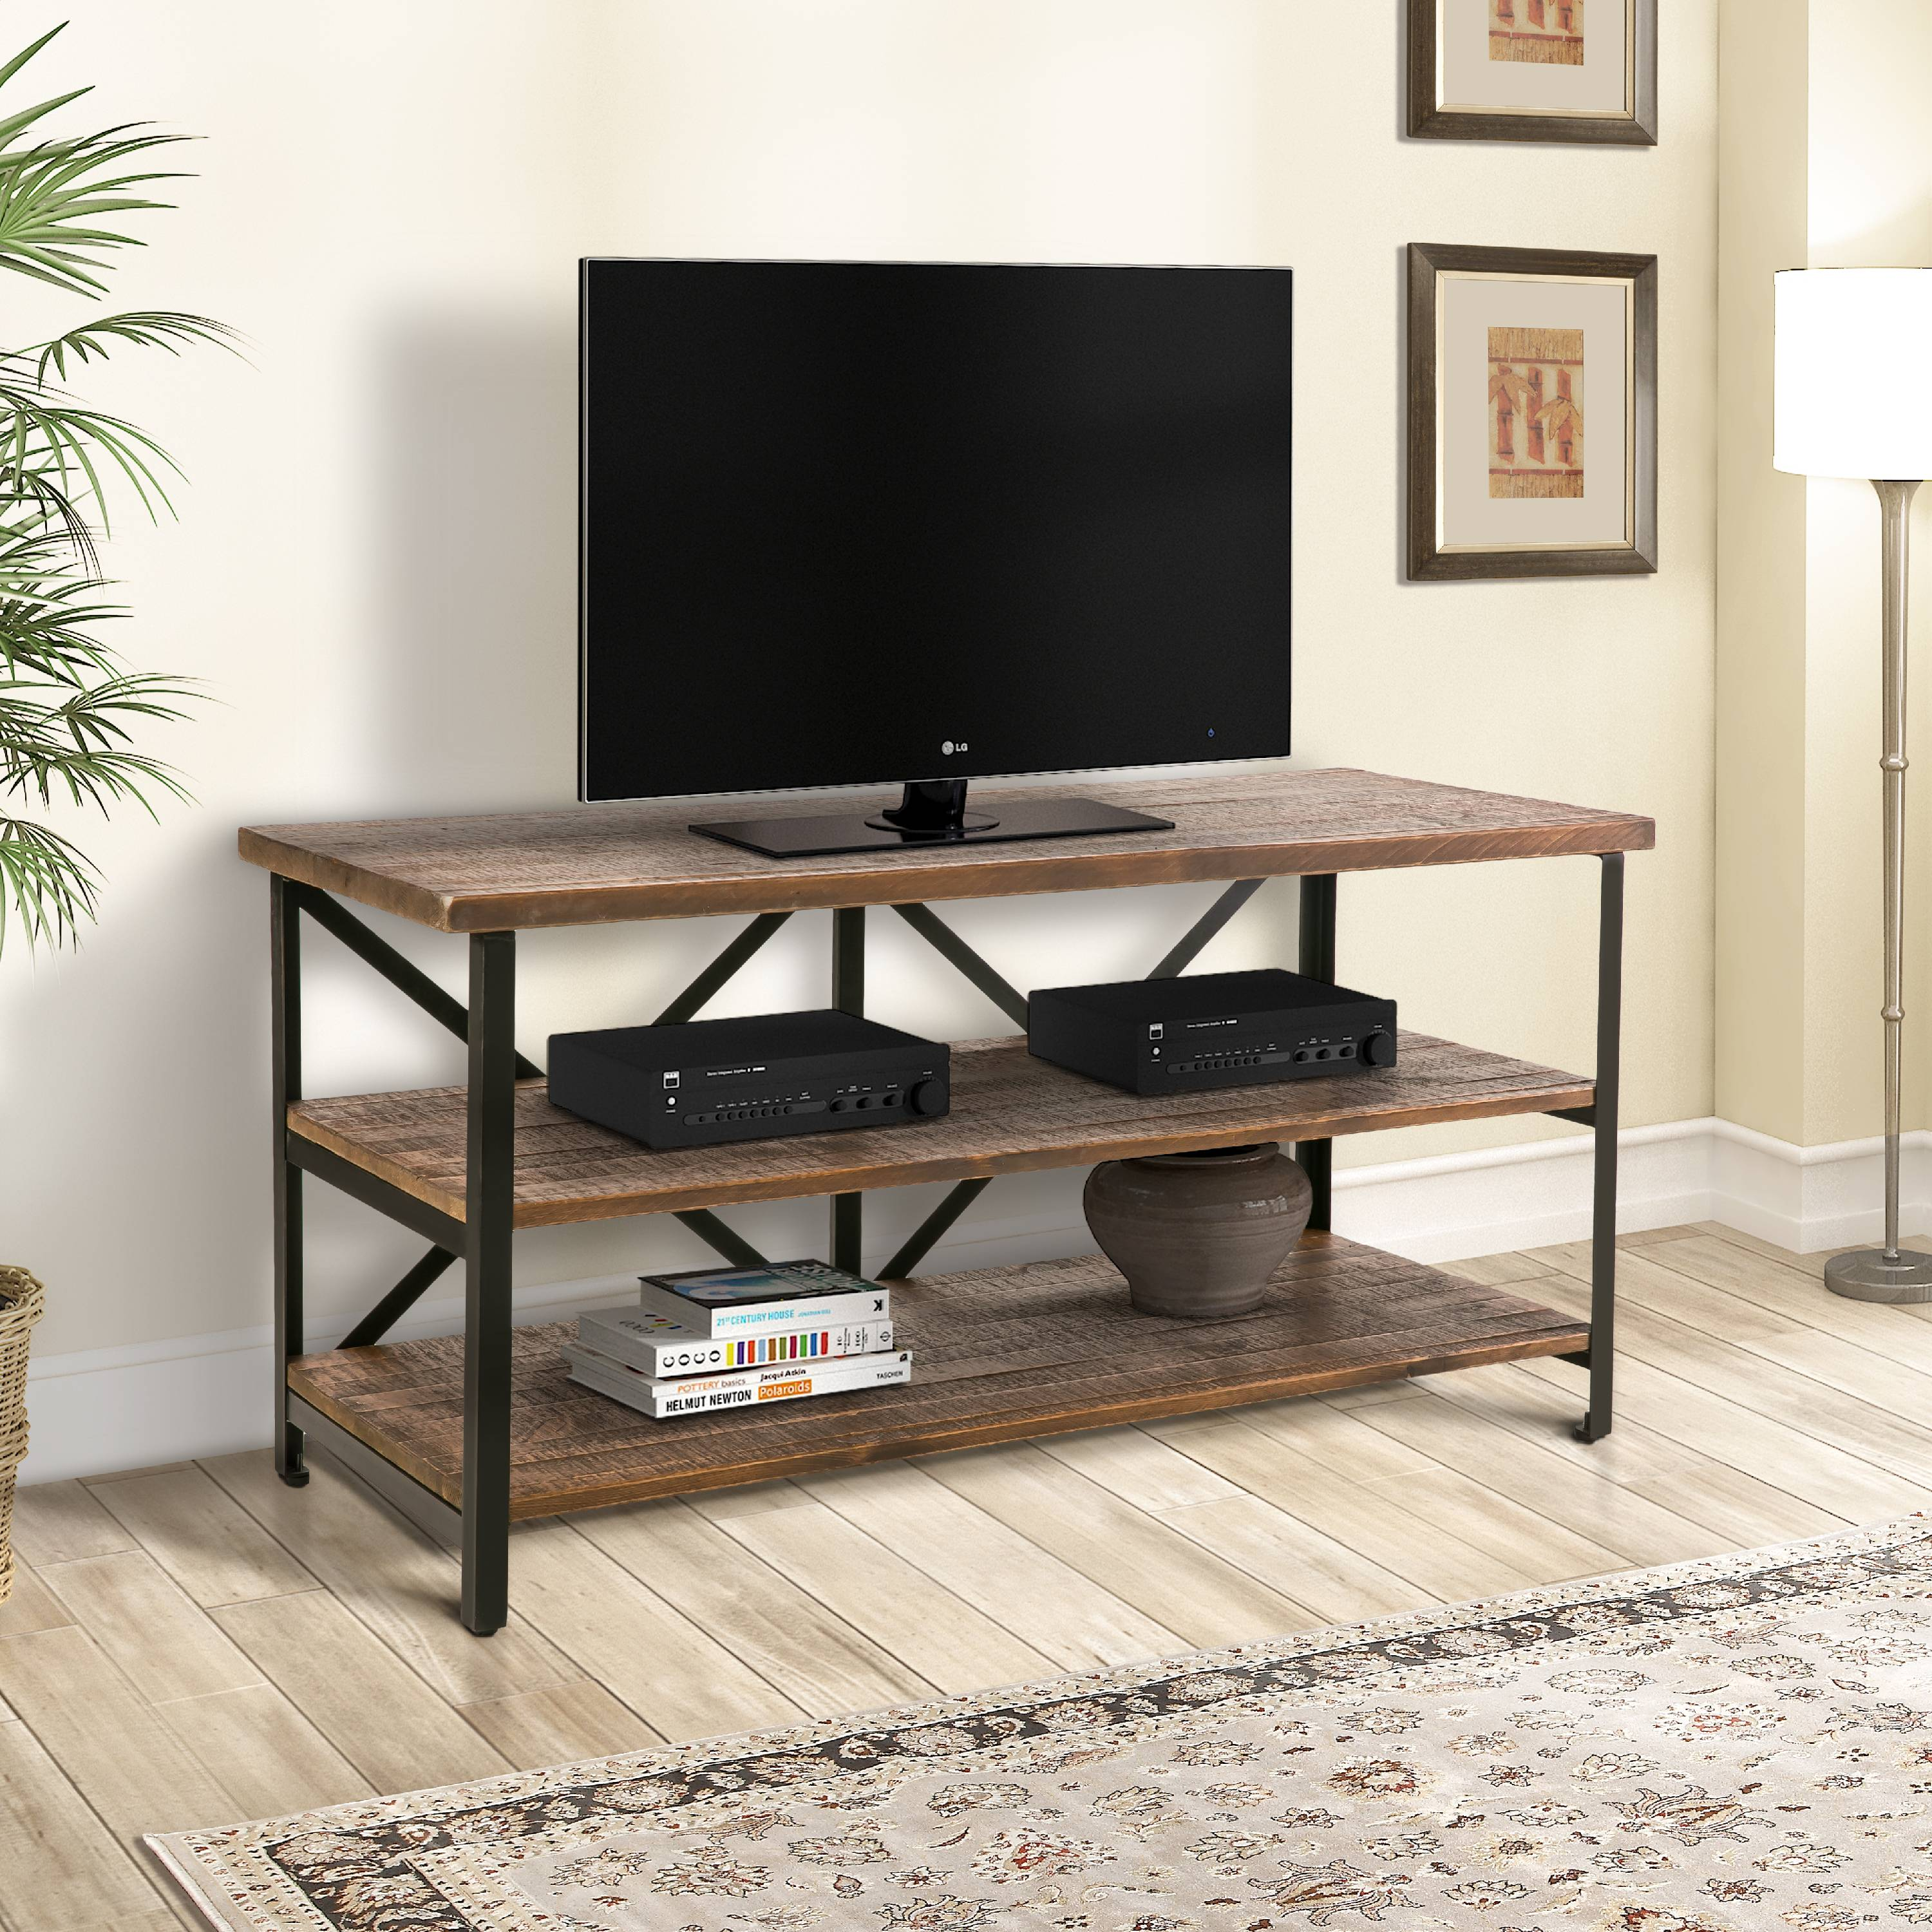 harper\u0026bright designs solid wood tv stand with metal frame three